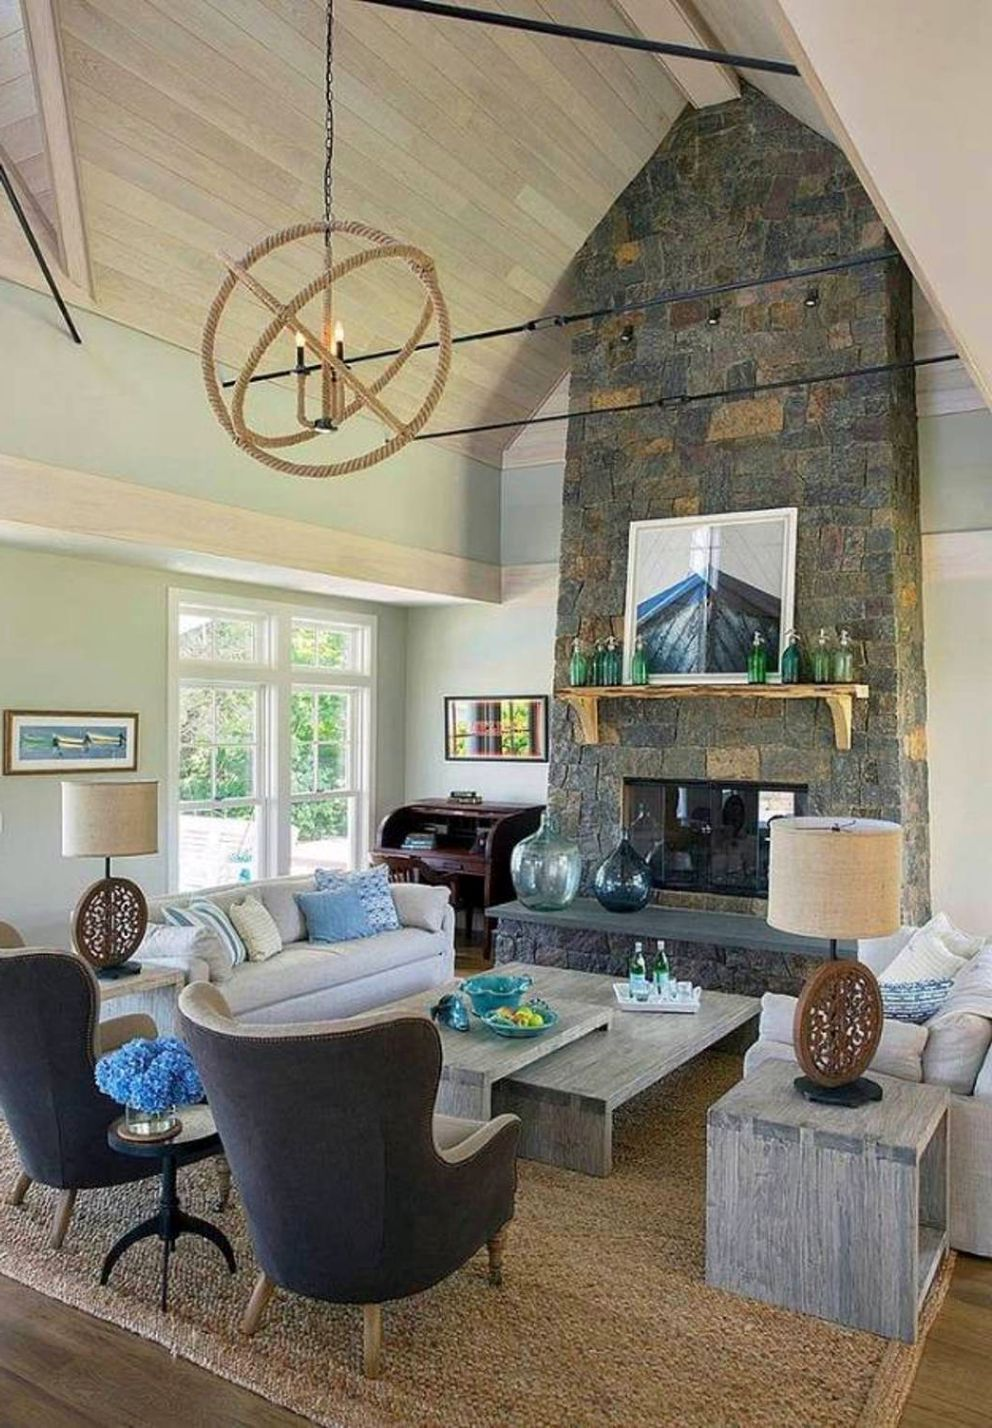 architecture cathedral ceiling lighting ideas modern on extraordinary living room ideas with lighting id=56800